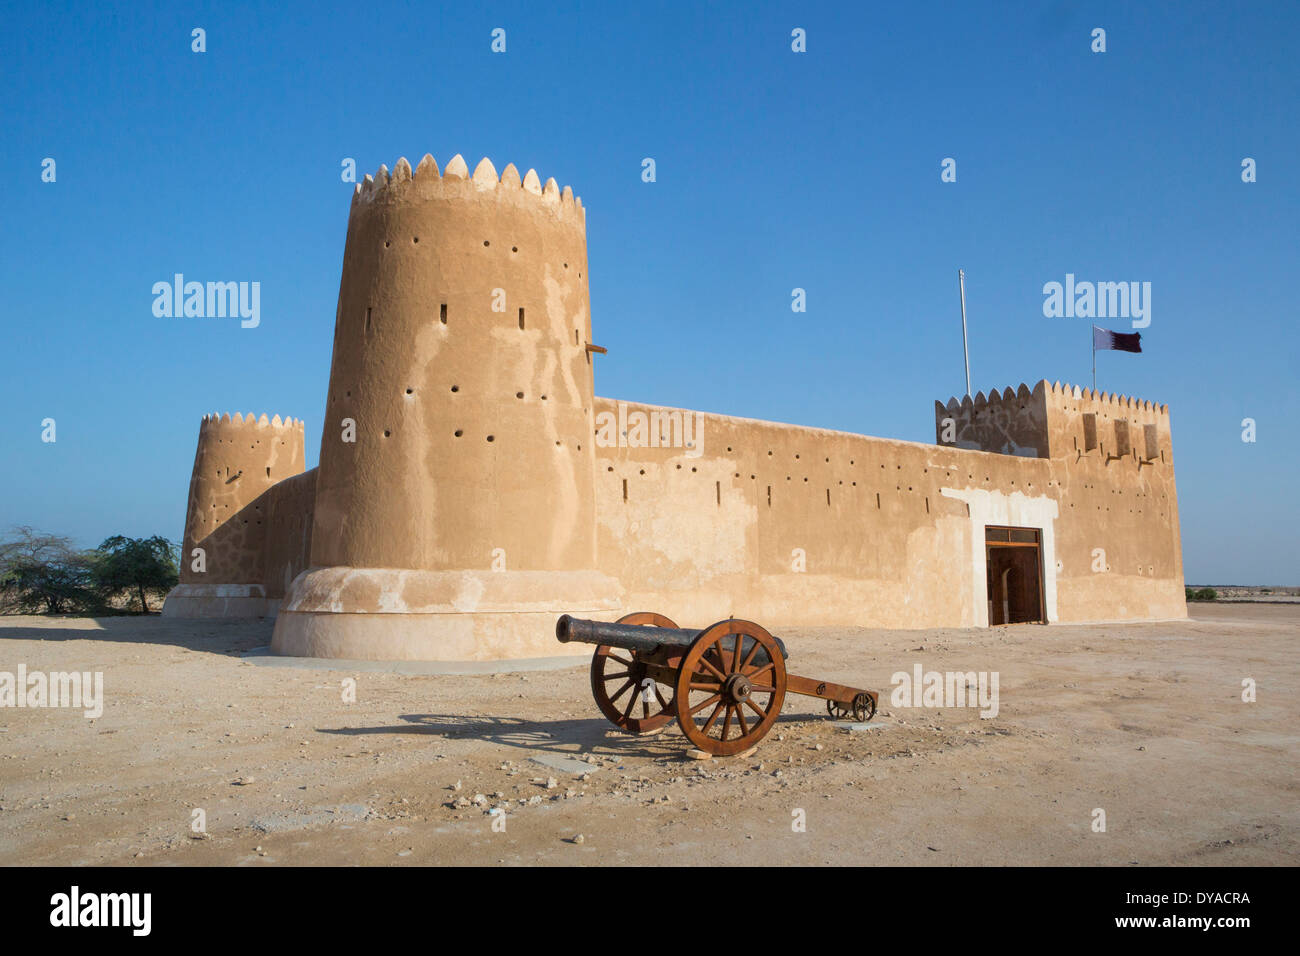 gun fortification World Heritage Al Zubarah Qatar Middle East architecture canon landmark fort history museum site travel un - Stock Image